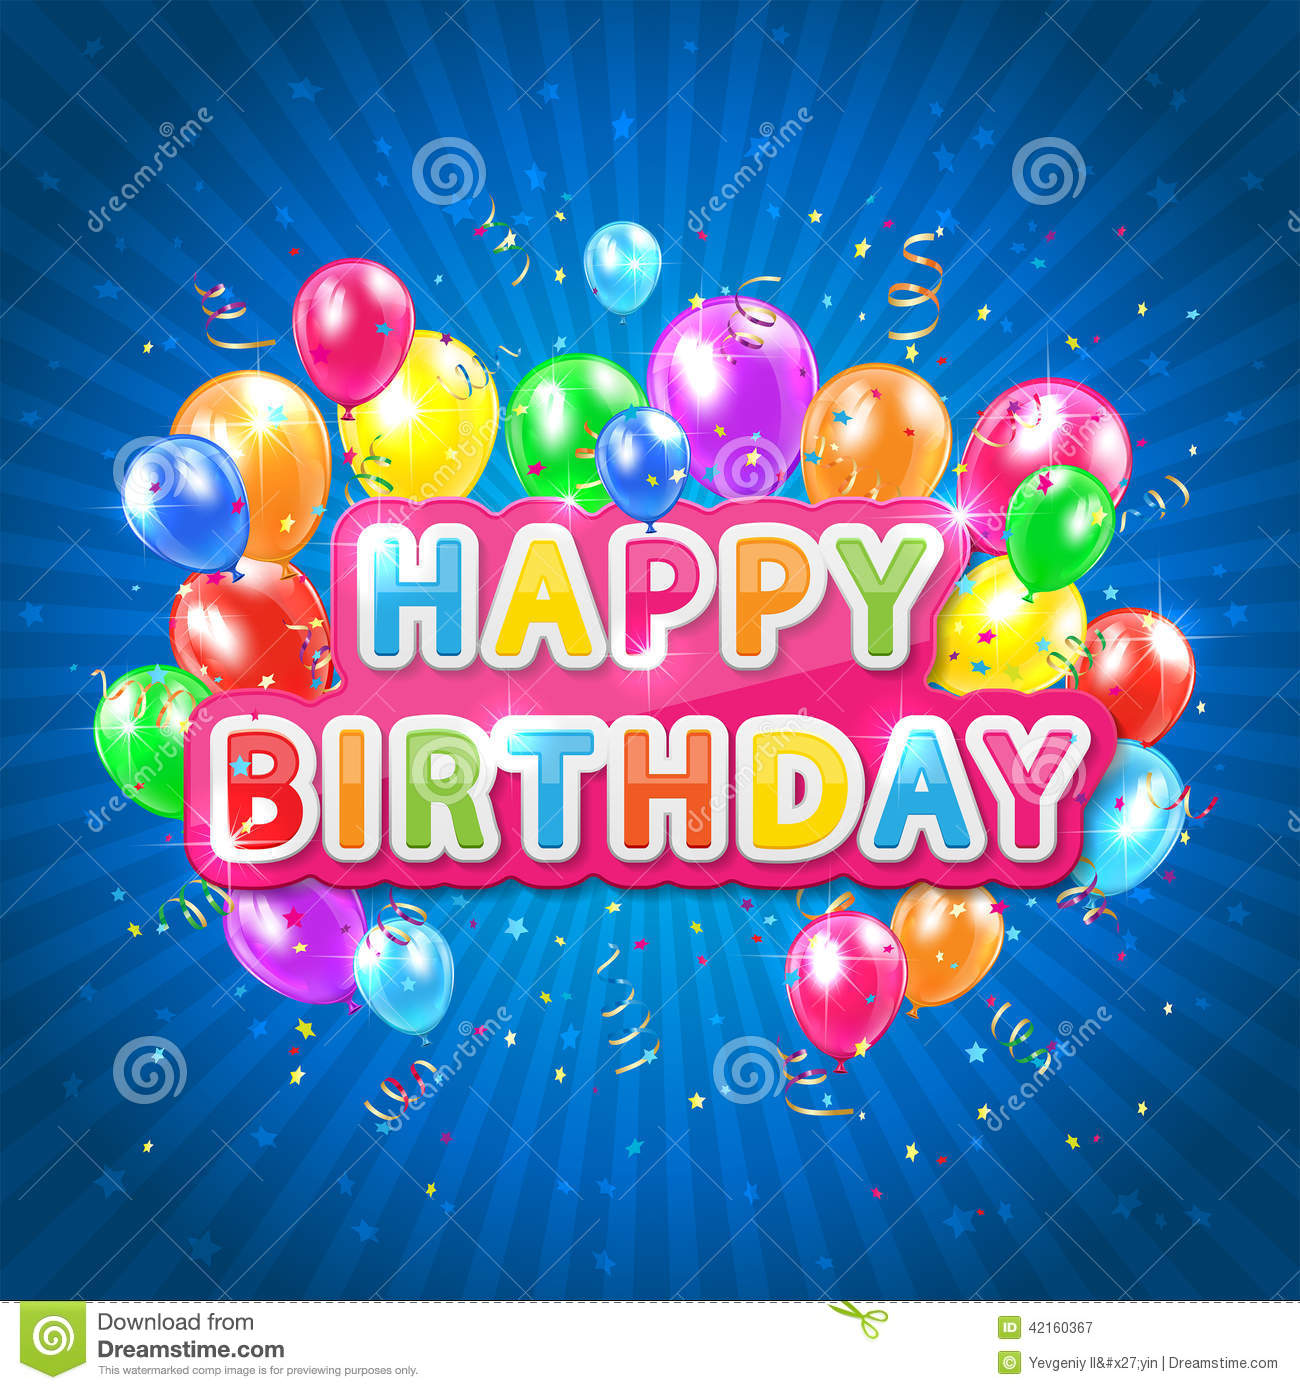 Happy Birthday Blue Background Stock Vector Illustration